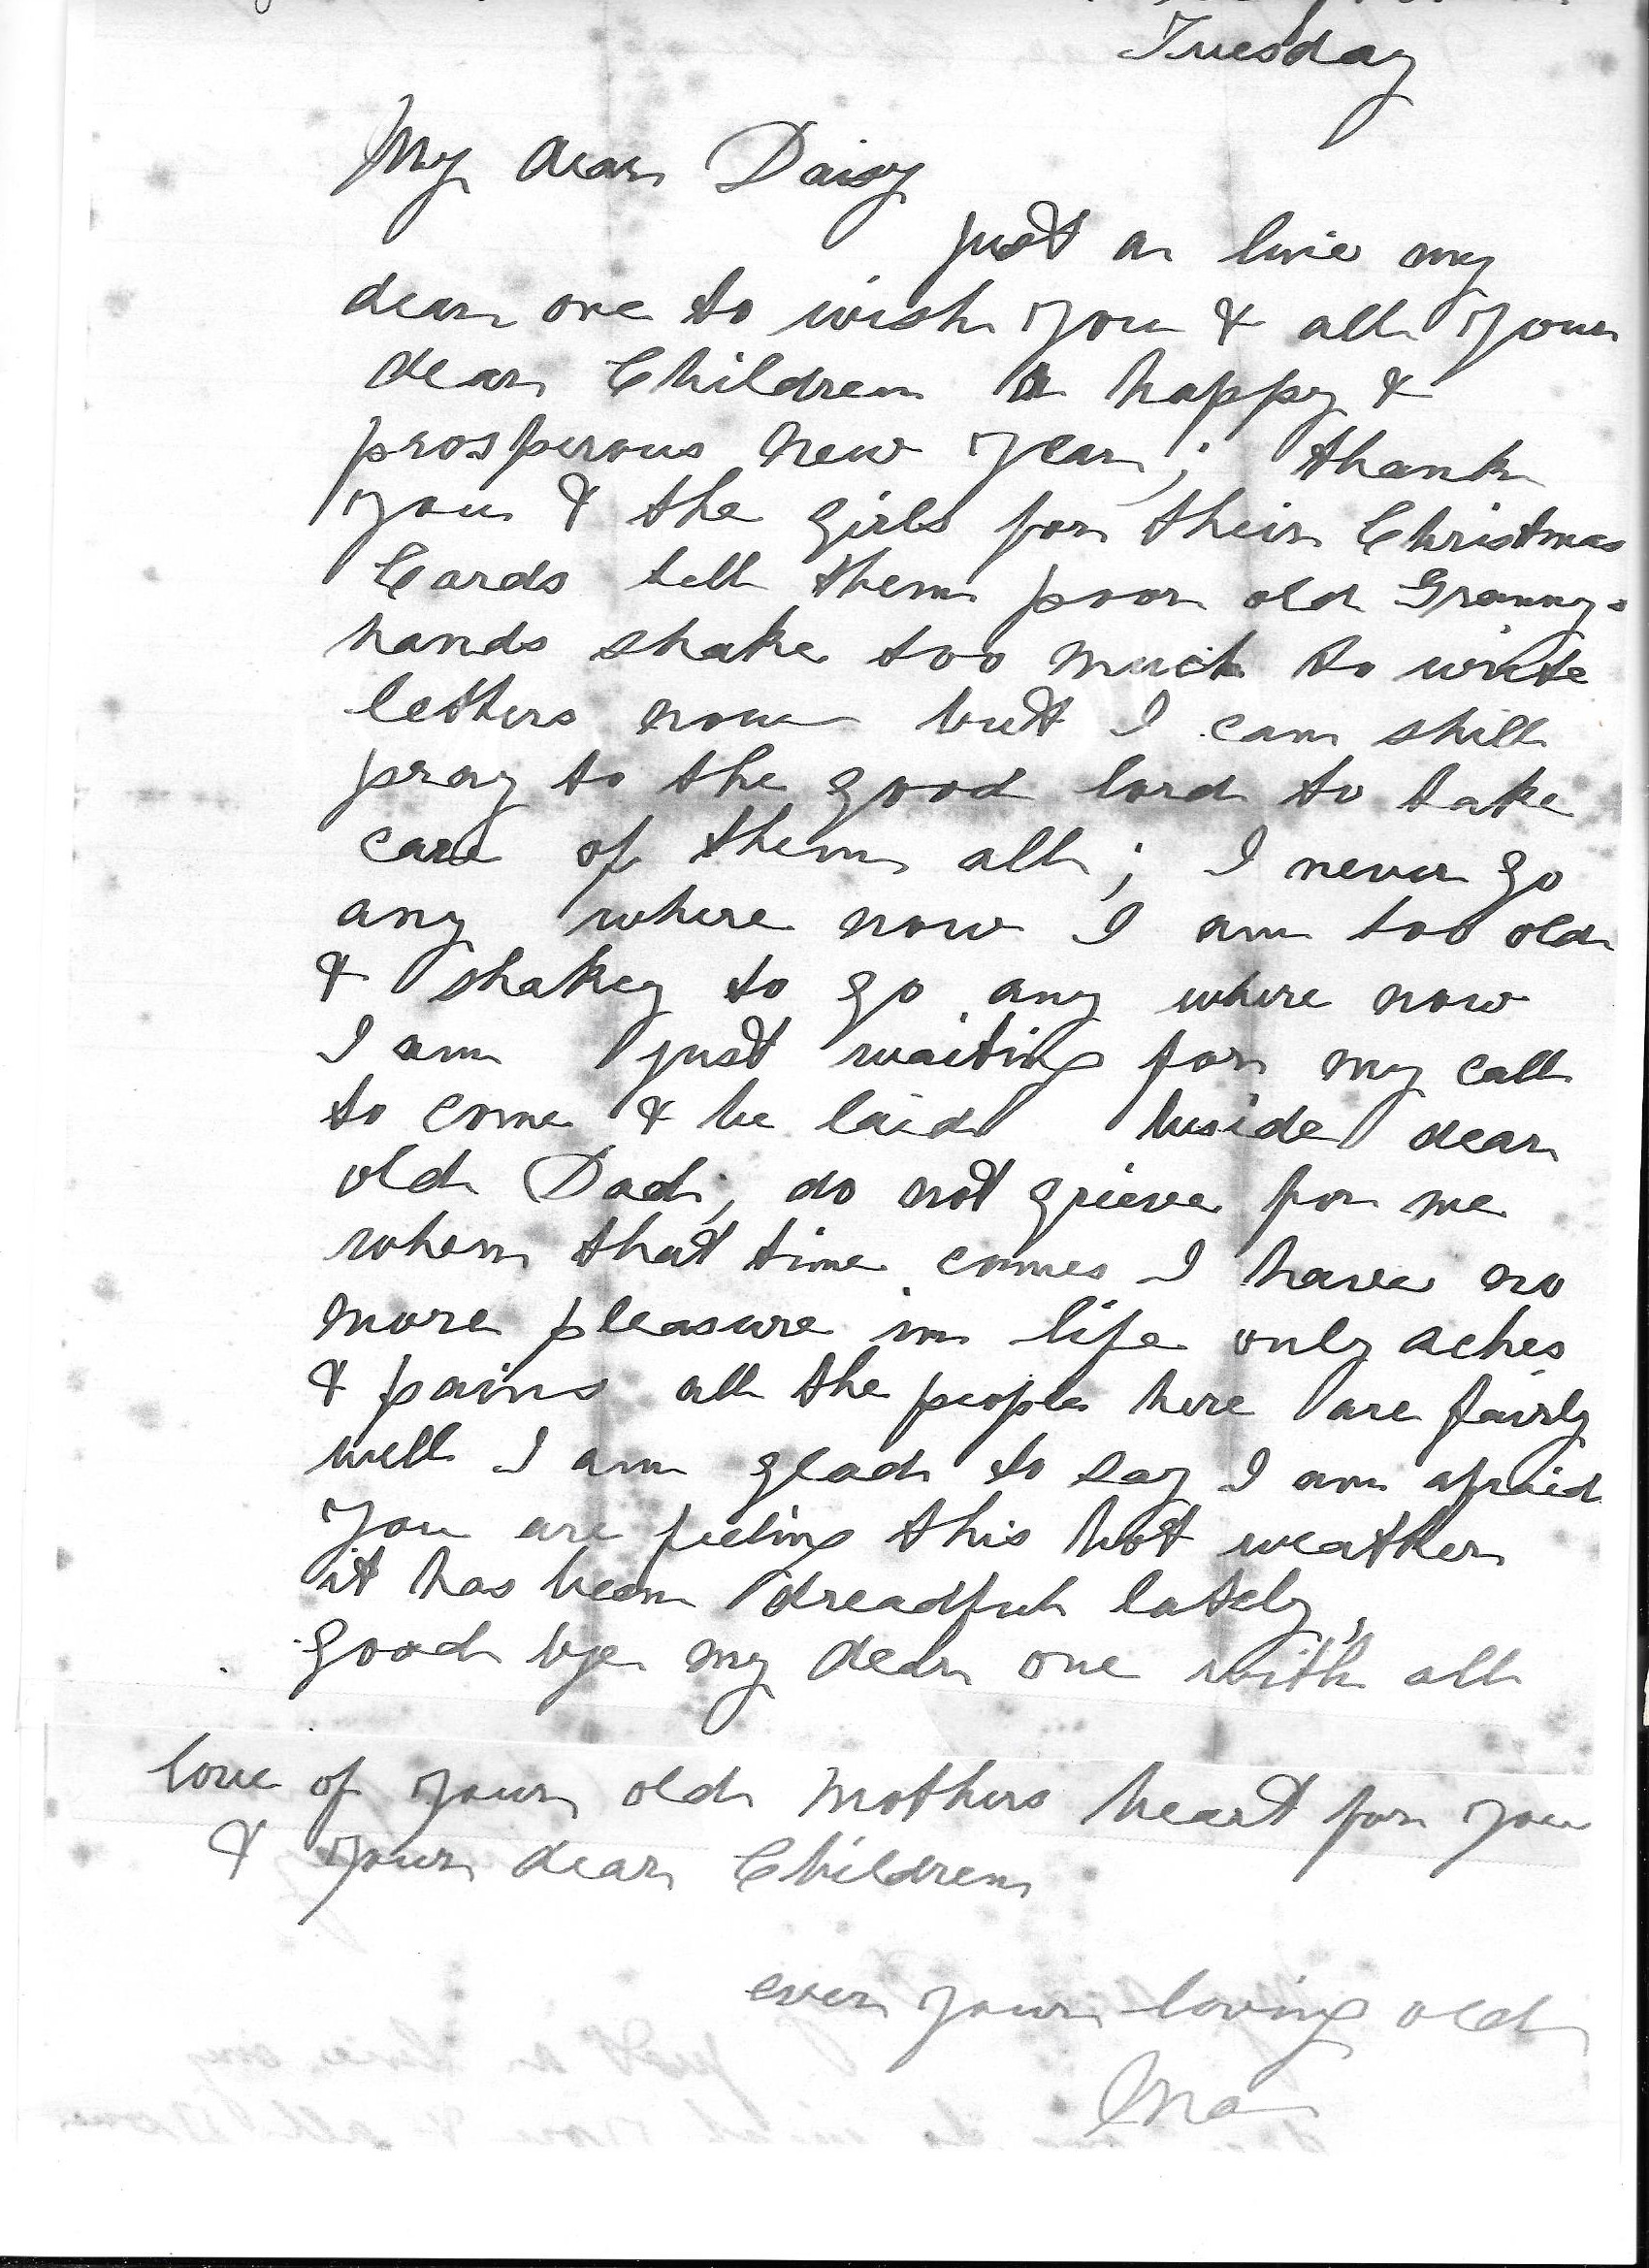 Letter by Mary Ann Beckley nee Waspe to her daughter Daisy McCleland